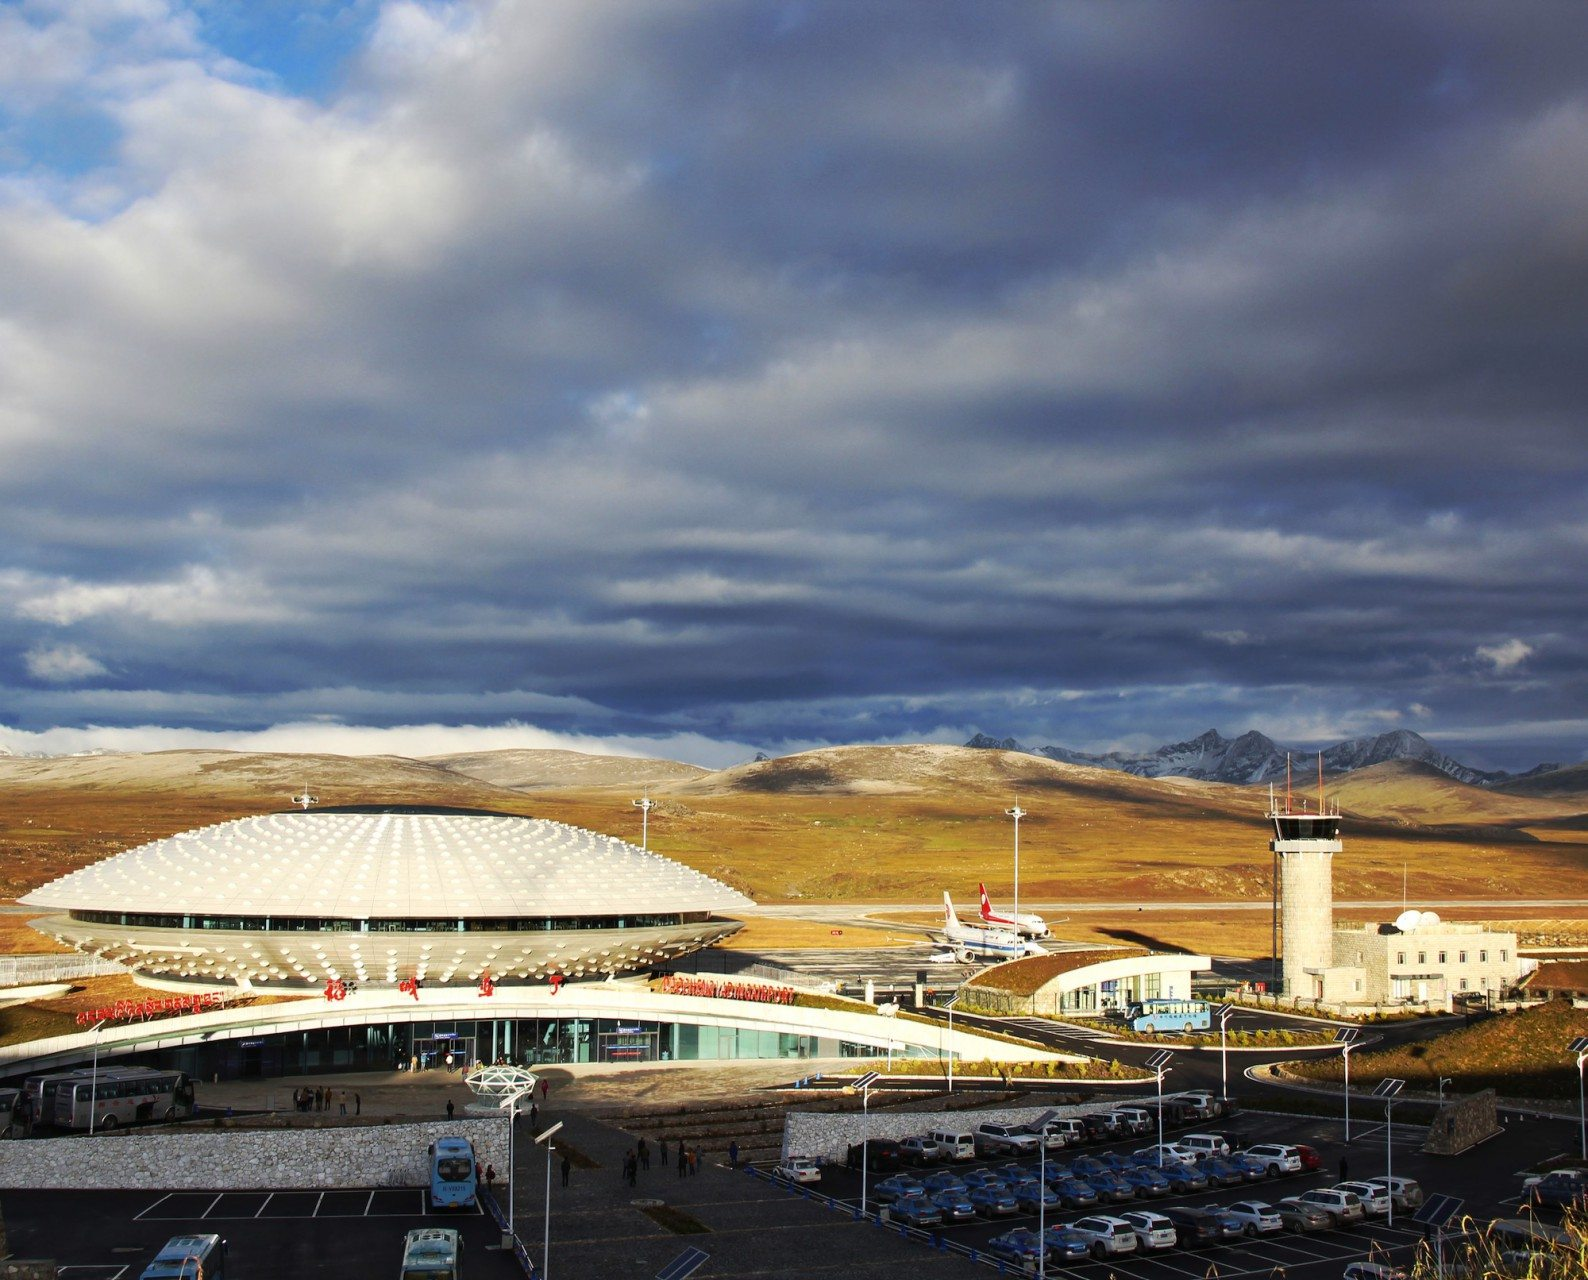 DCY. Daocheng Yading Airport, Sangdui, Tibet. Von GUD Group.